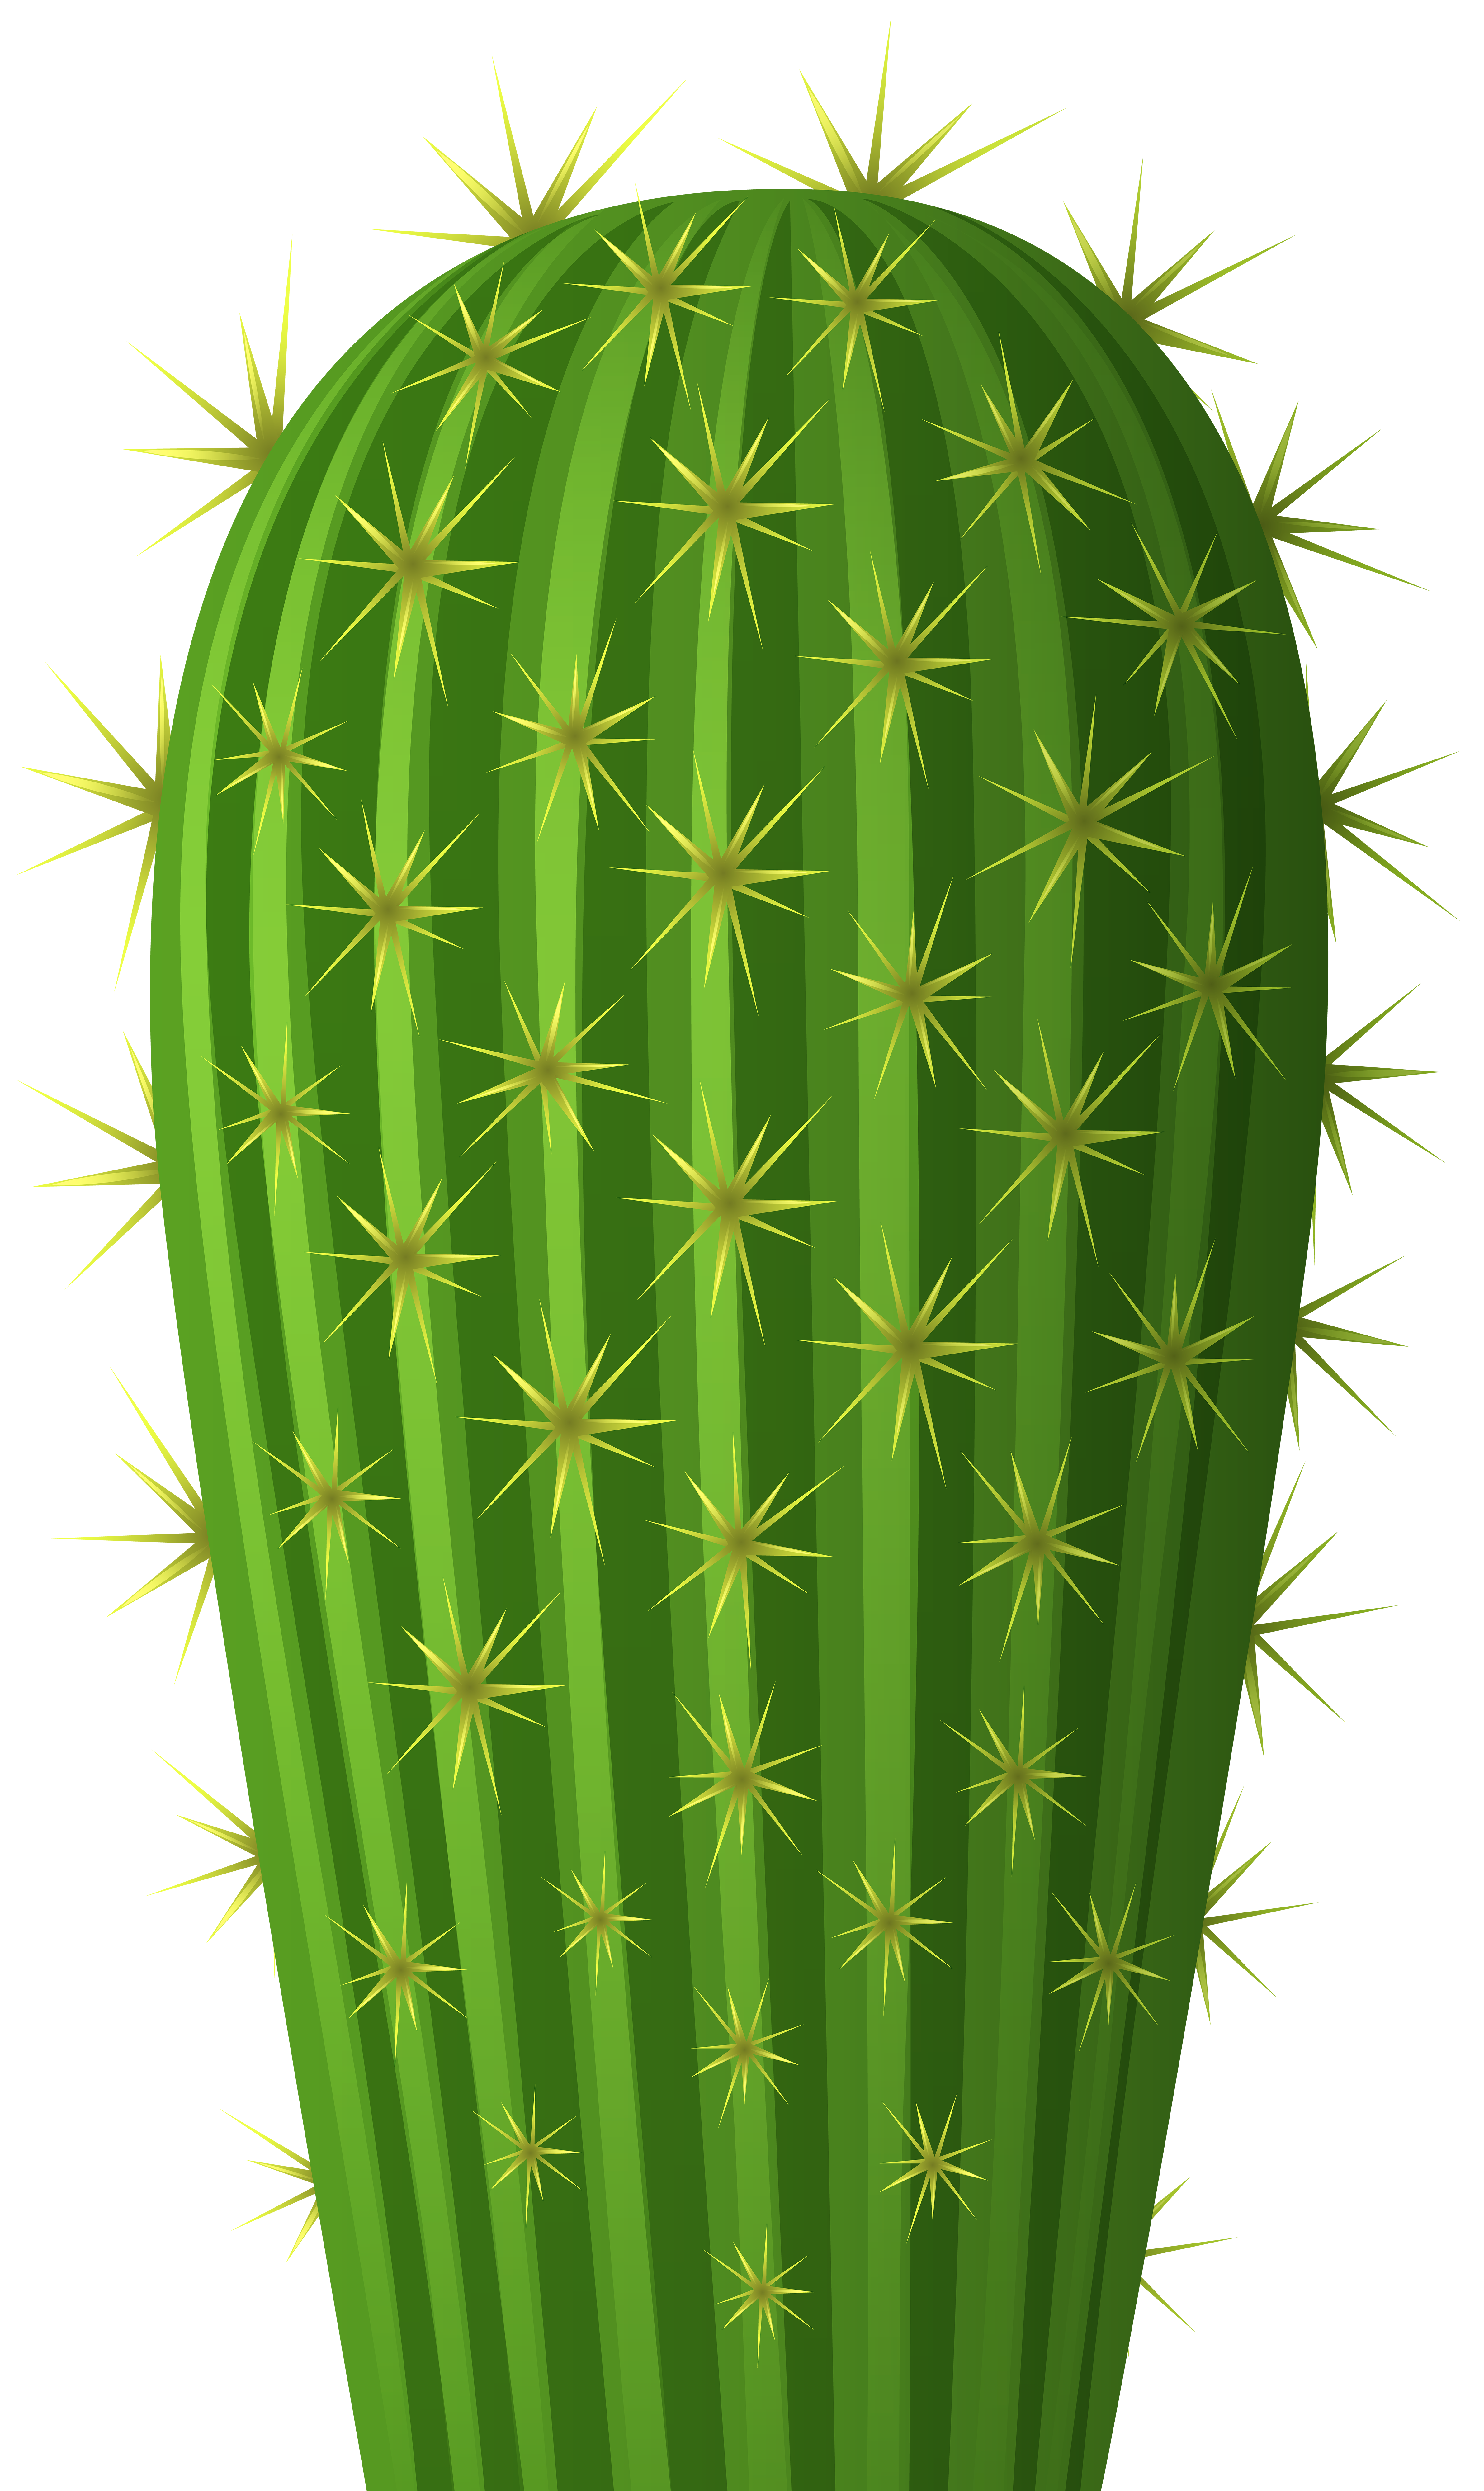 Cactus png. Clip art image gallery